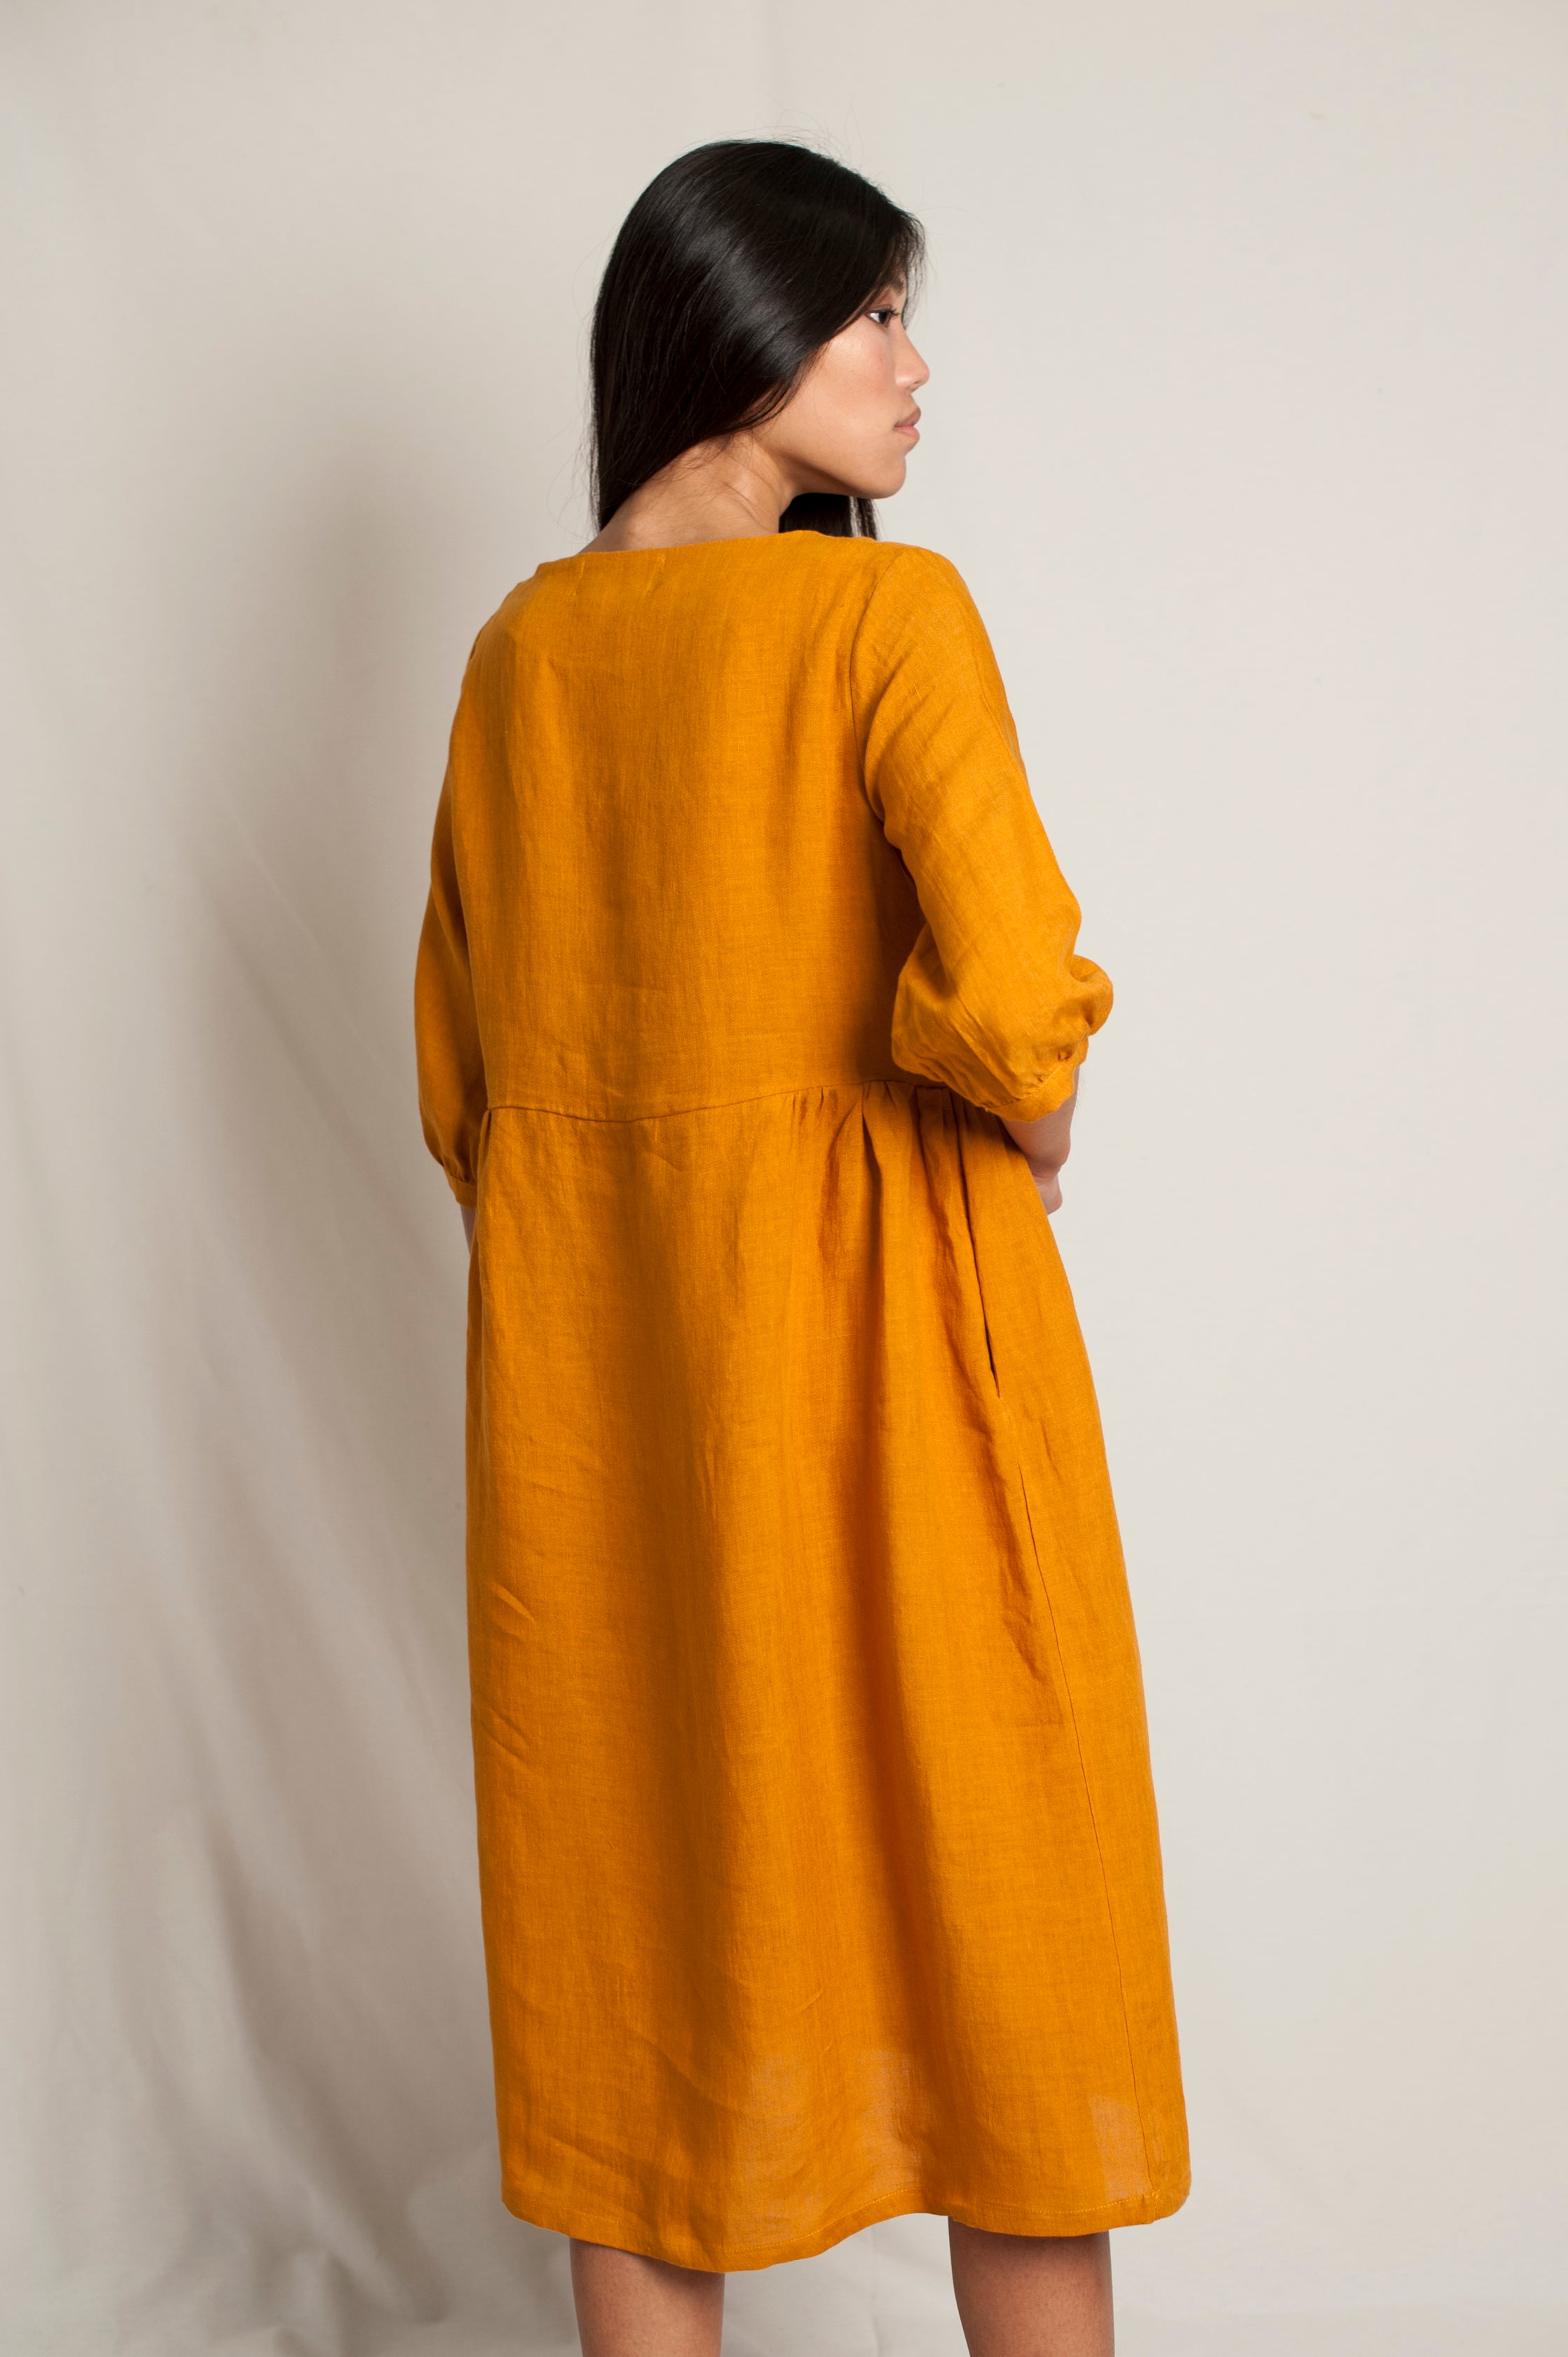 L'Envers - Flora Linen Dress - 100% French linen - Color Ocre - Back Picture